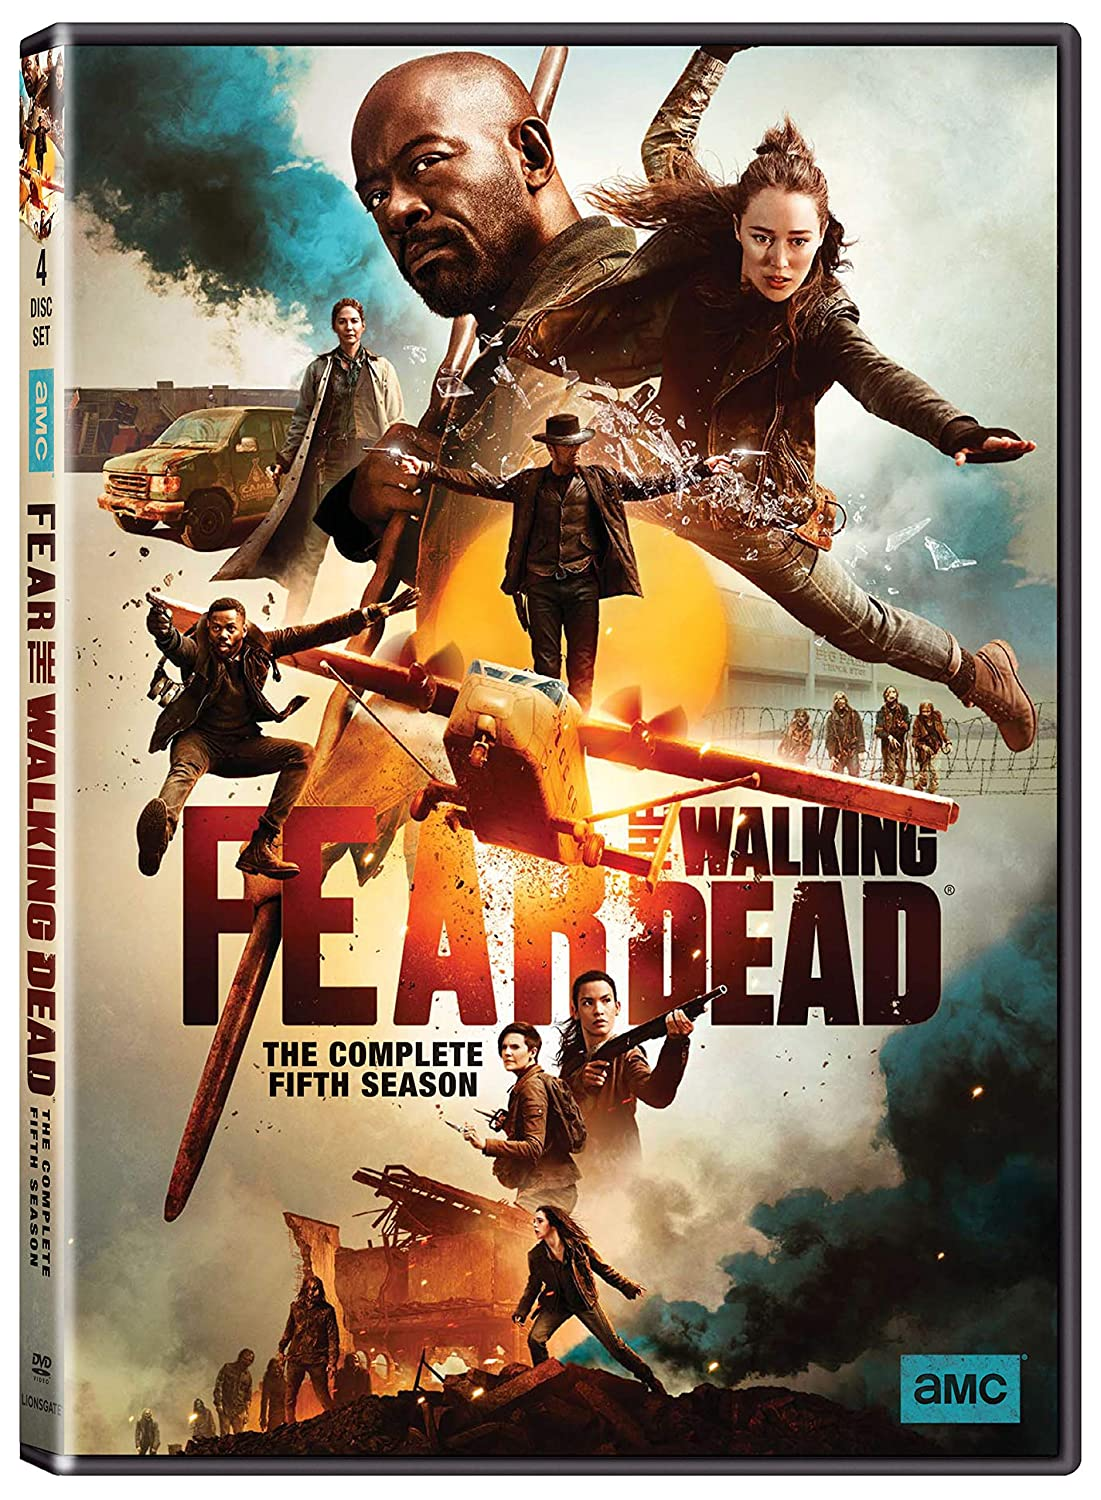 Fear The Walking Dead Season 5 DVD AMC DVDs & Blu-ray Discs